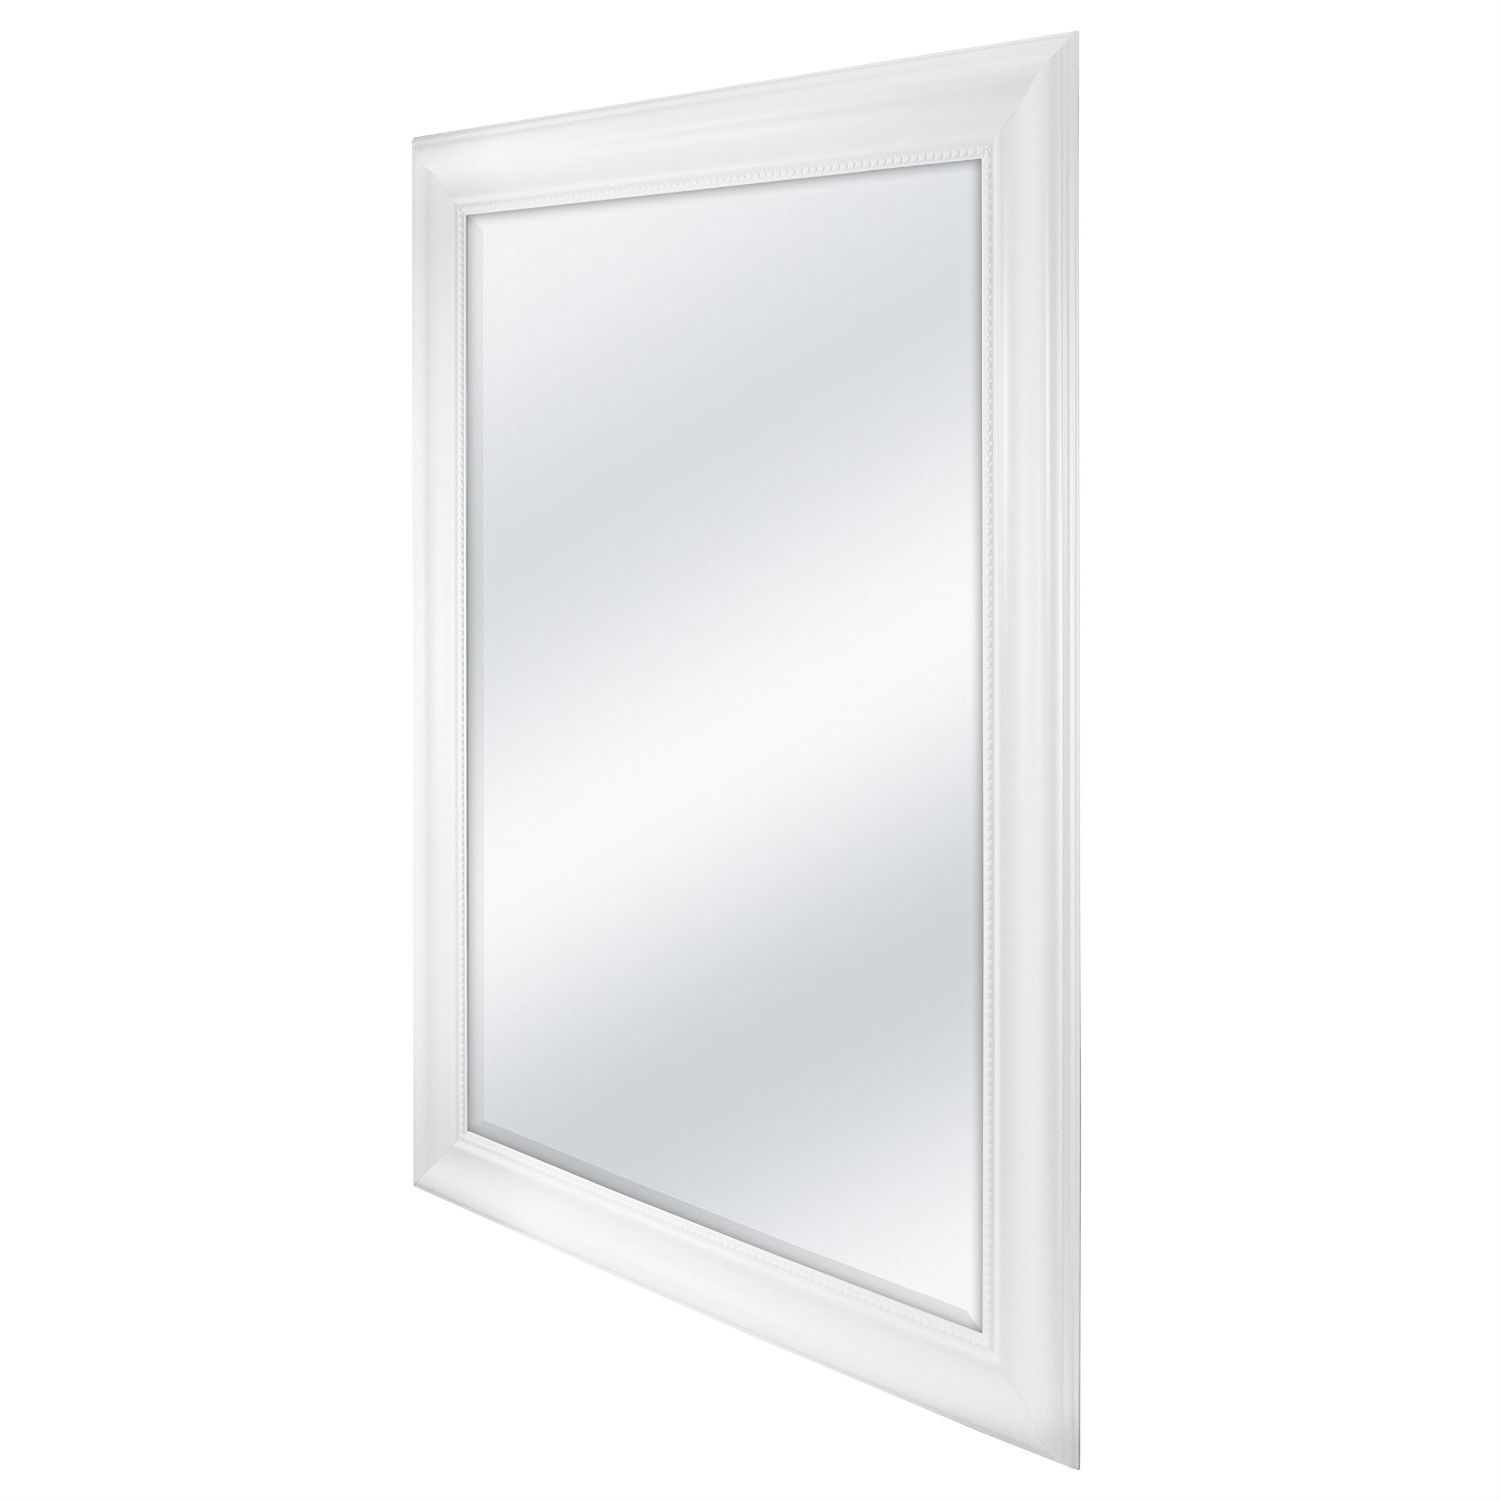 Large Rectangular Bathroom Wall Hanging Mirror with White Frame - 42 ...